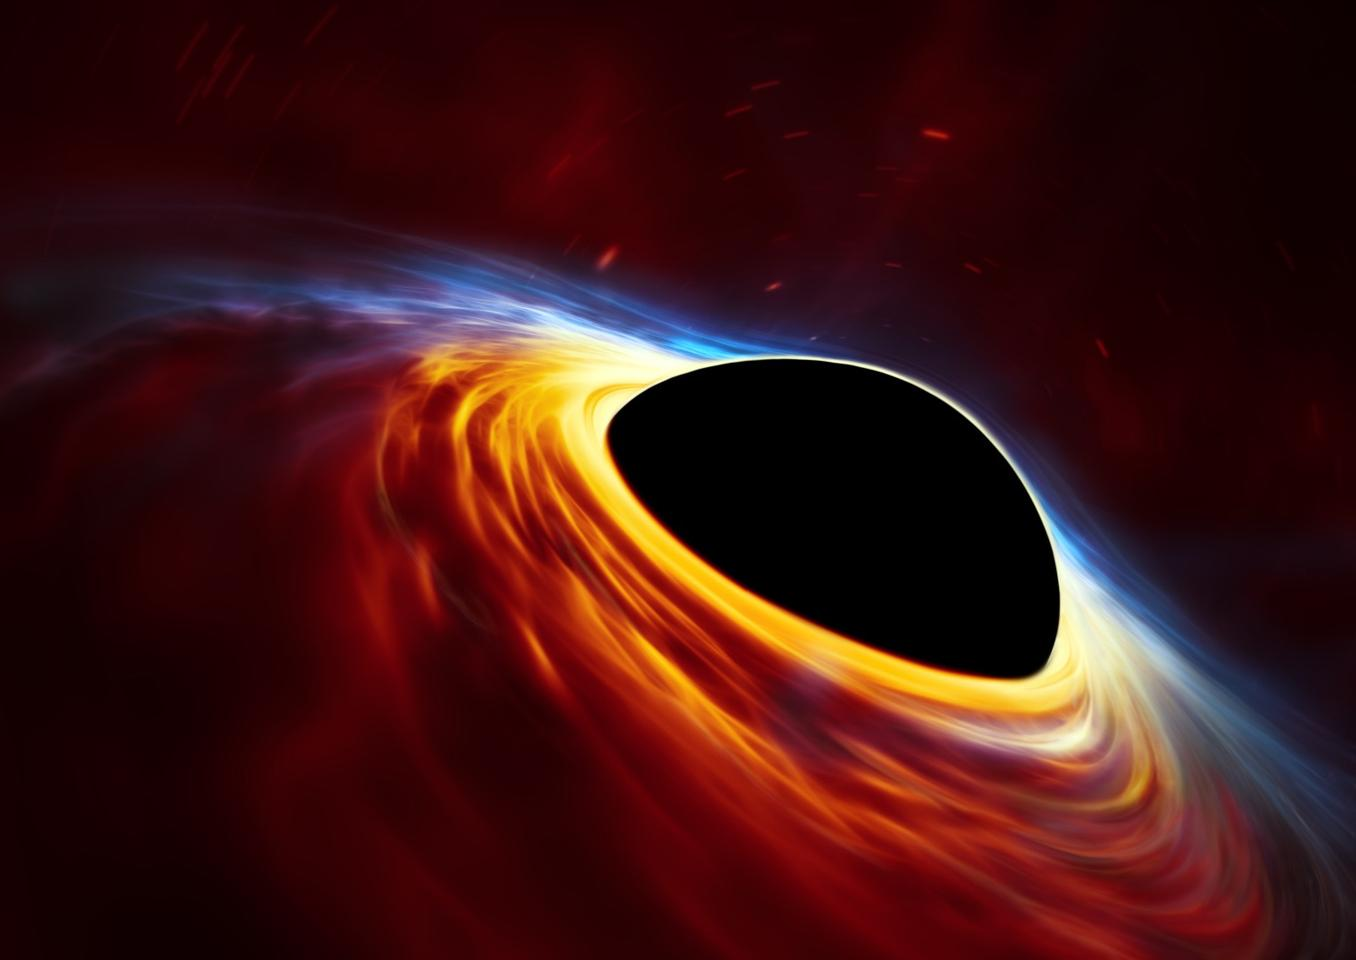 Artist's impression of a supermassive black hole surrounded by an accretion disk formed from a dead star